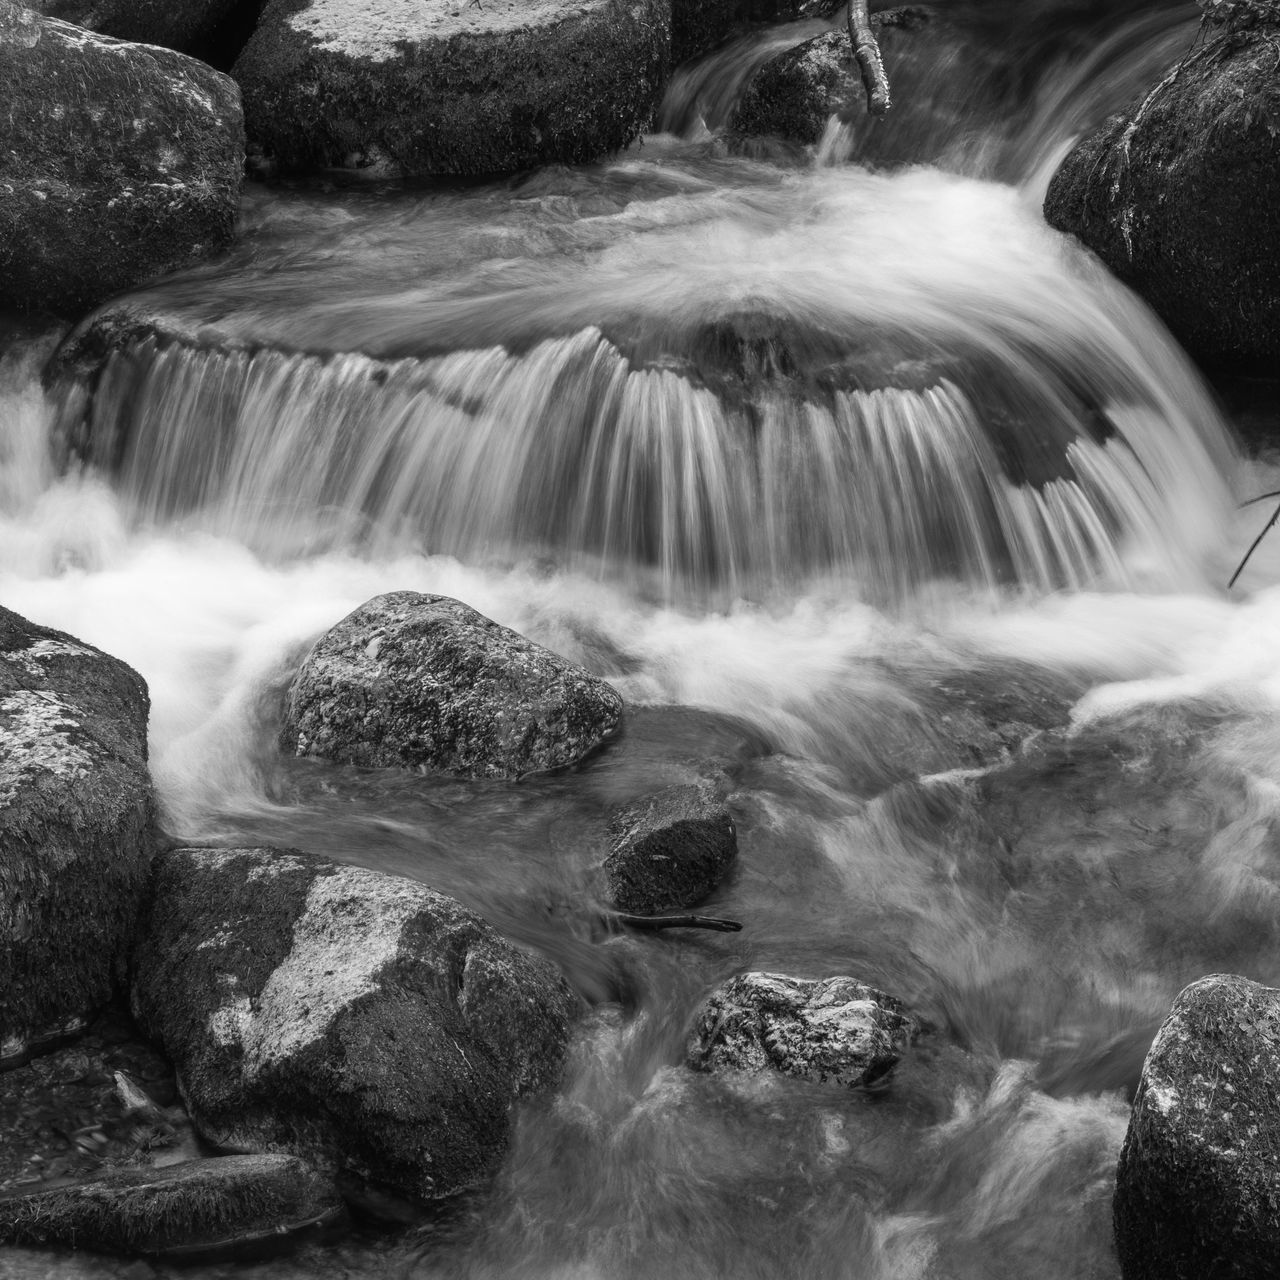 long exposure, rock, motion, scenics - nature, rock - object, solid, beauty in nature, blurred motion, water, flowing water, waterfall, no people, flowing, nature, day, outdoors, travel destinations, environment, land, stream - flowing water, falling water, power in nature